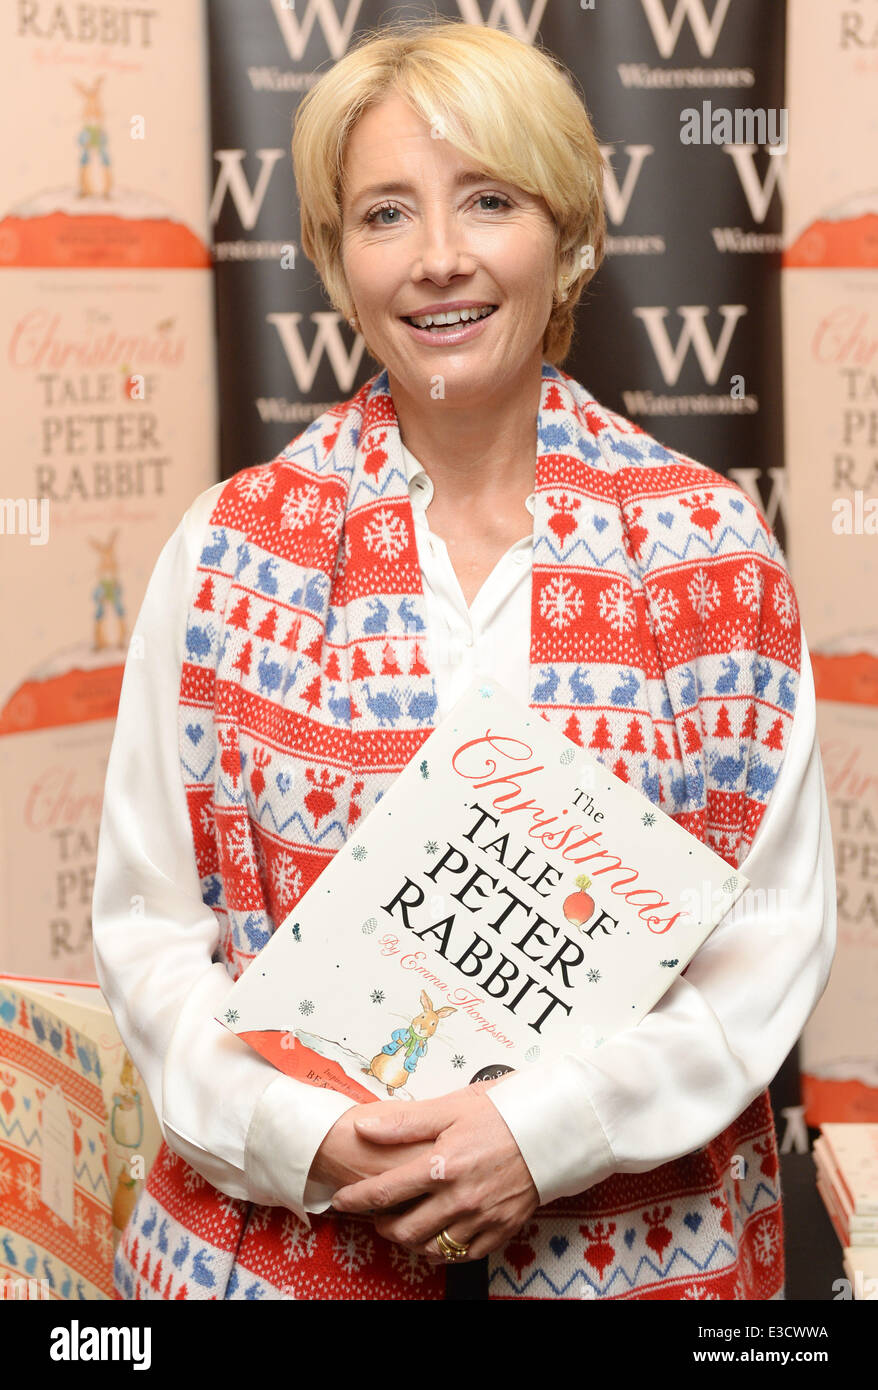 emma-thompson-signs-copies-of-her-book-the-christmas-tale-of-peter-E3CWWA.jpg